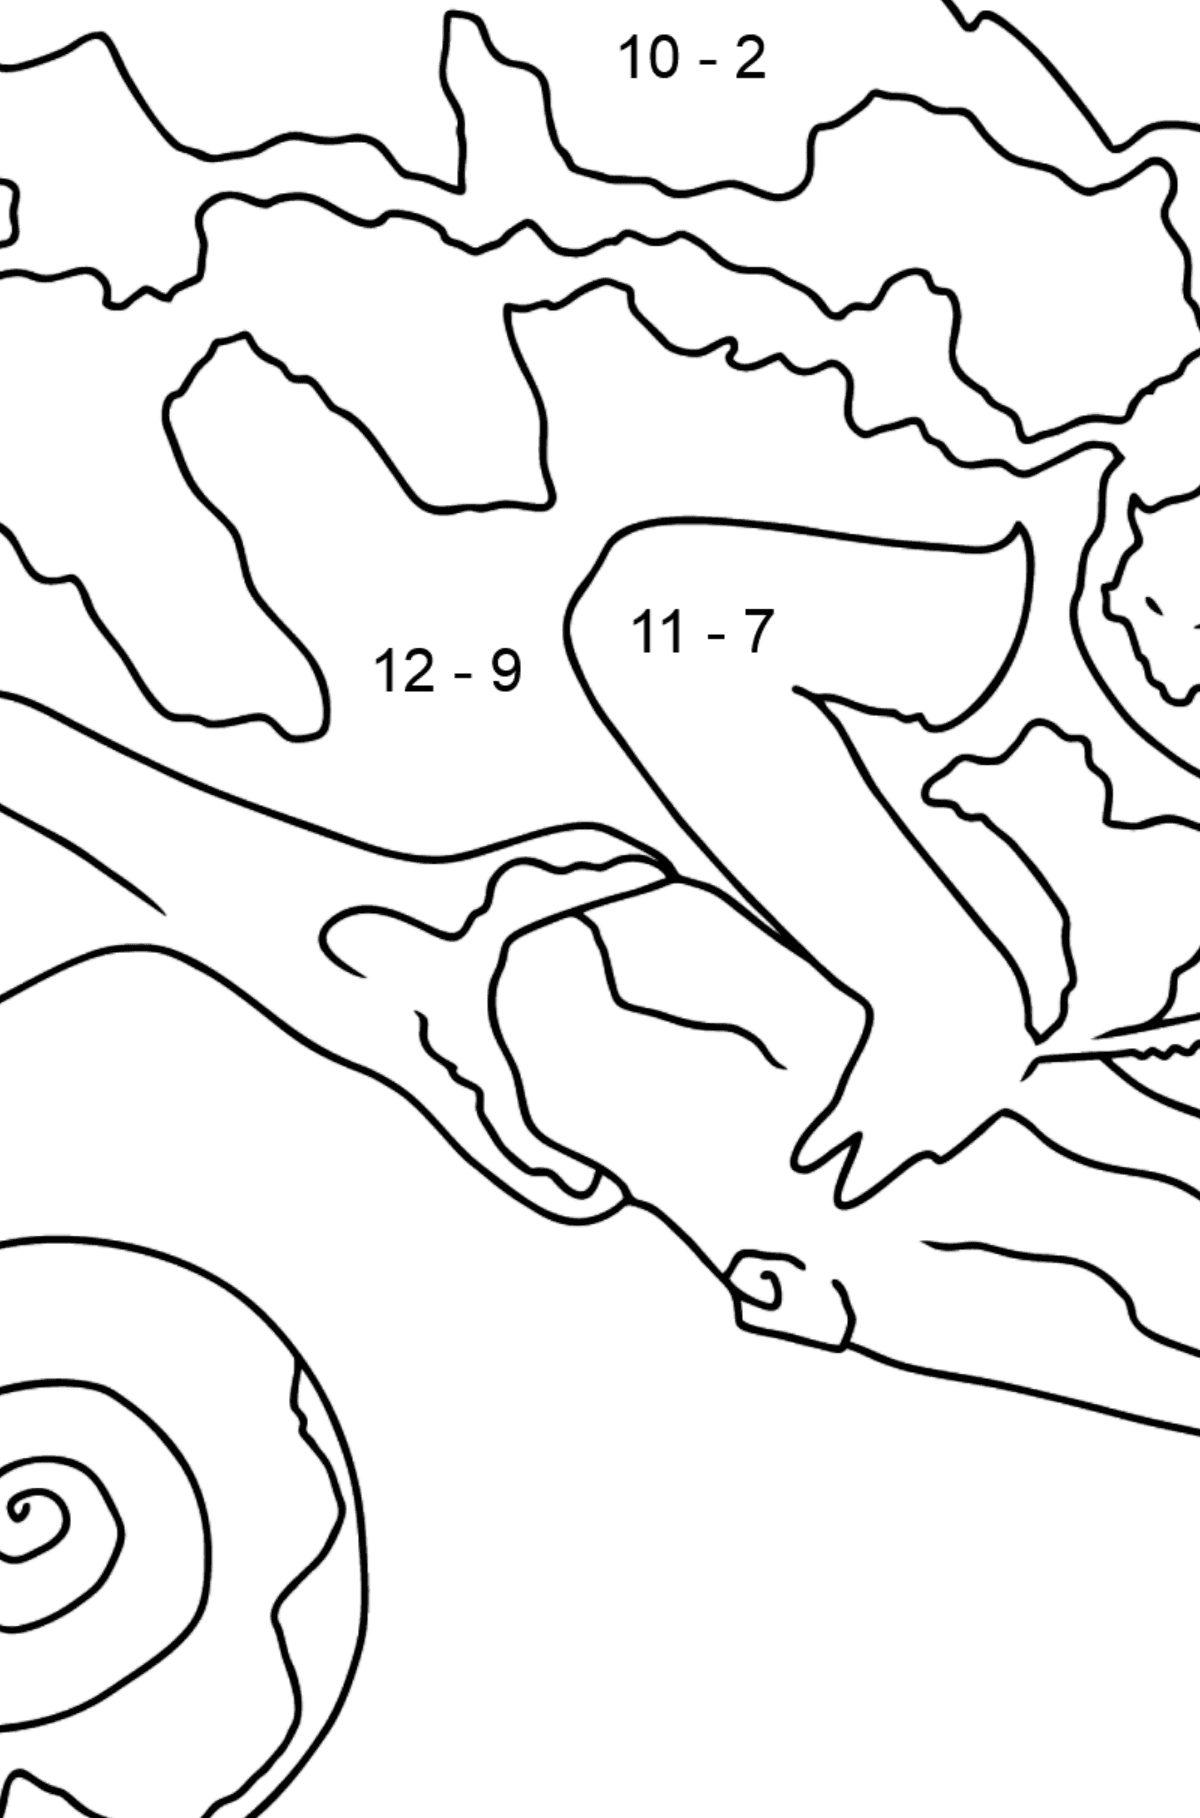 Coloring Page - A Chameleon is Having a Rest - Math Coloring - Subtraction for Kids